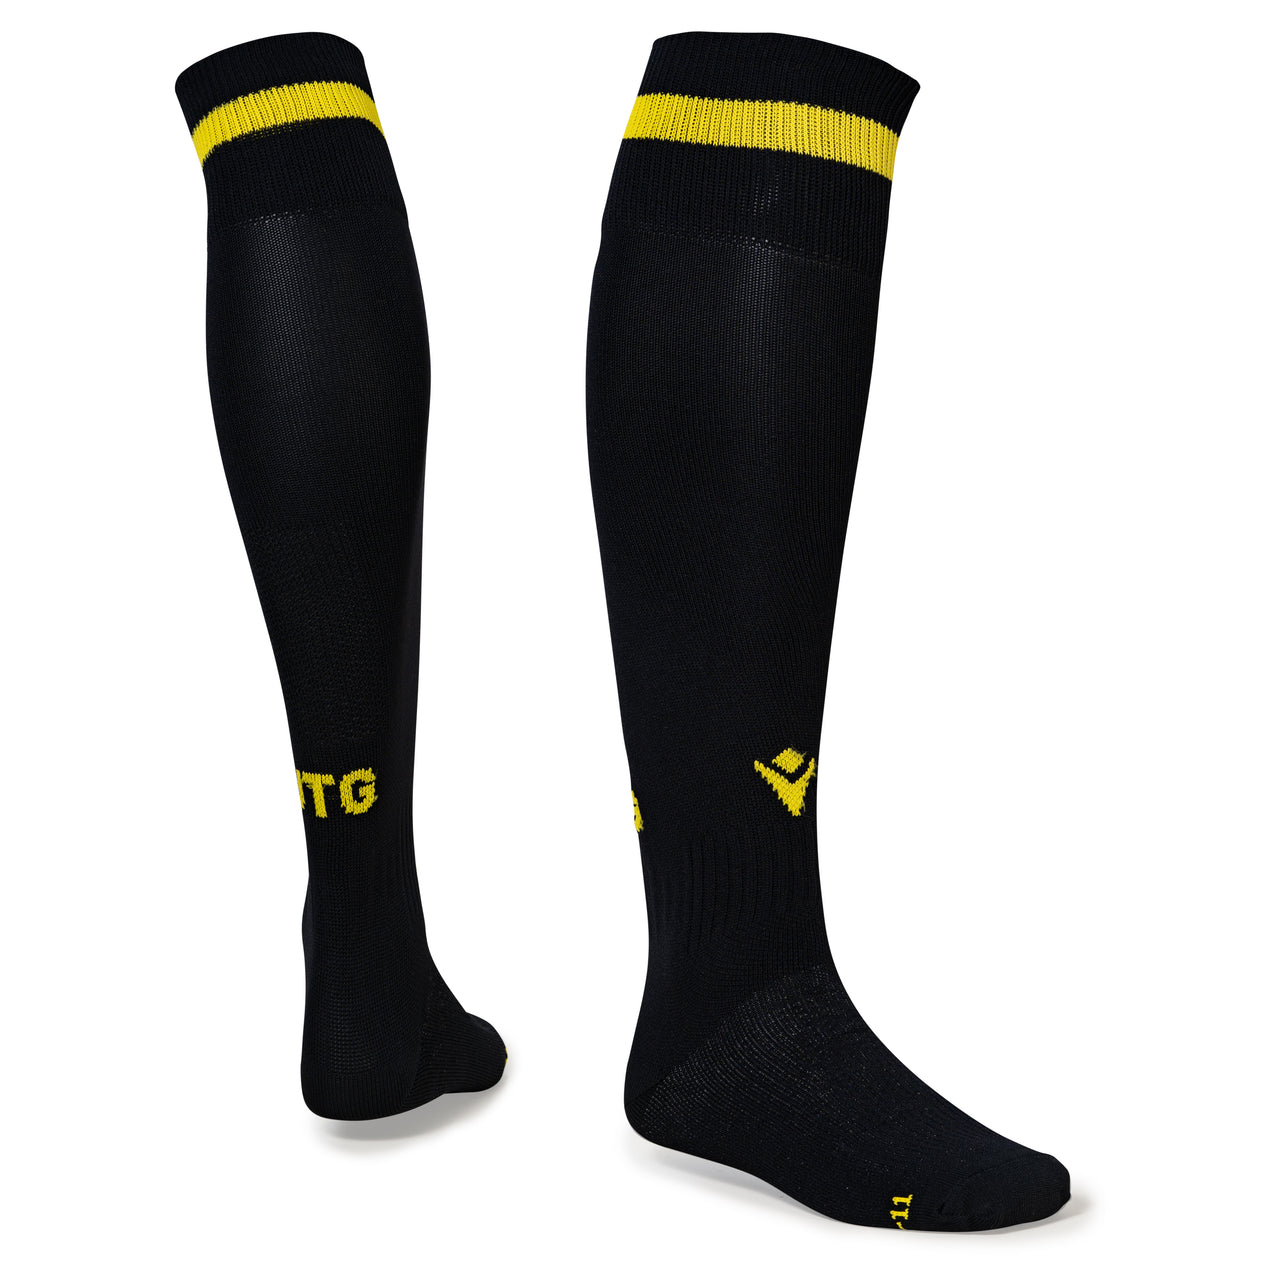 Bristol Rovers Away Socks 2020/21